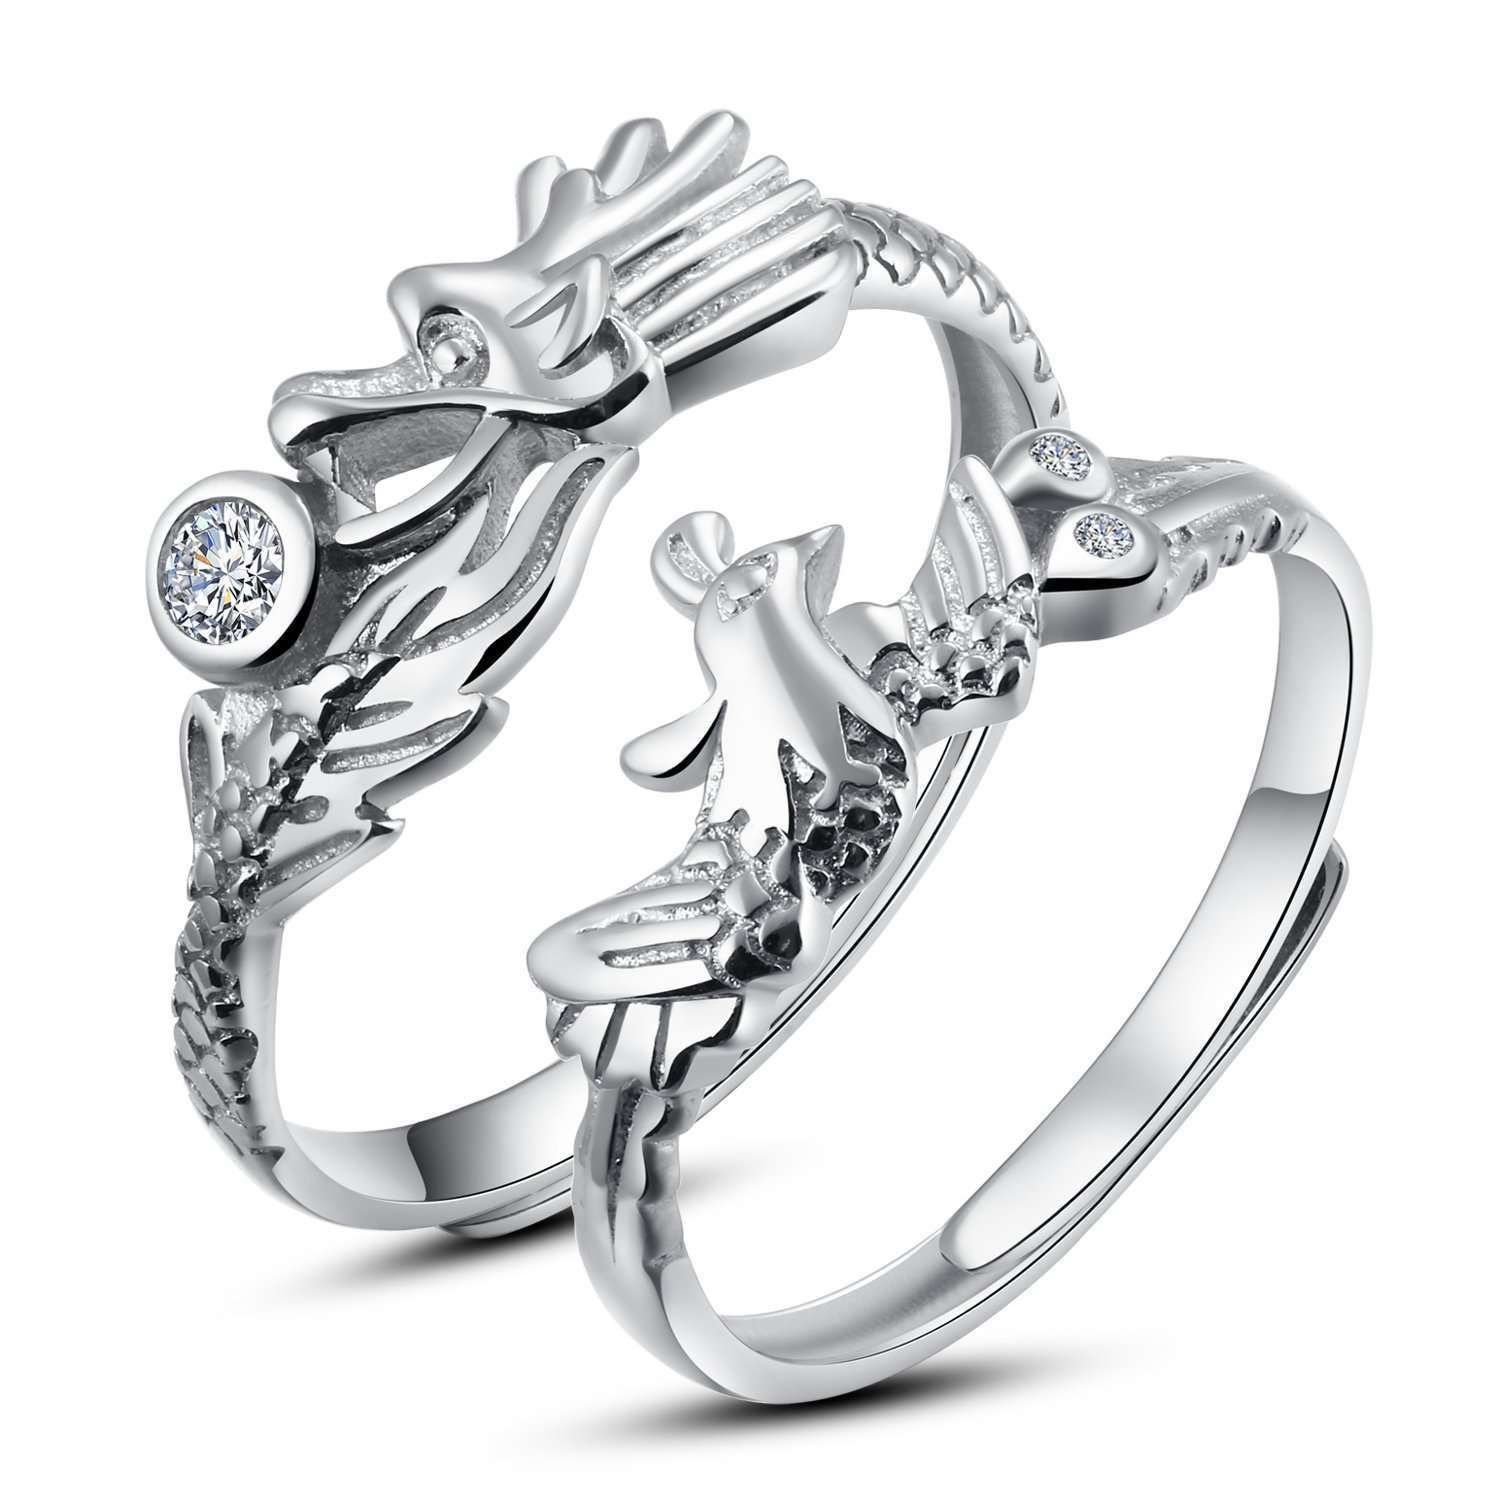 Rosemandy Sterling Silver Resizable Dragon And Phoenix Couples Promise Rings Wedding Engagement